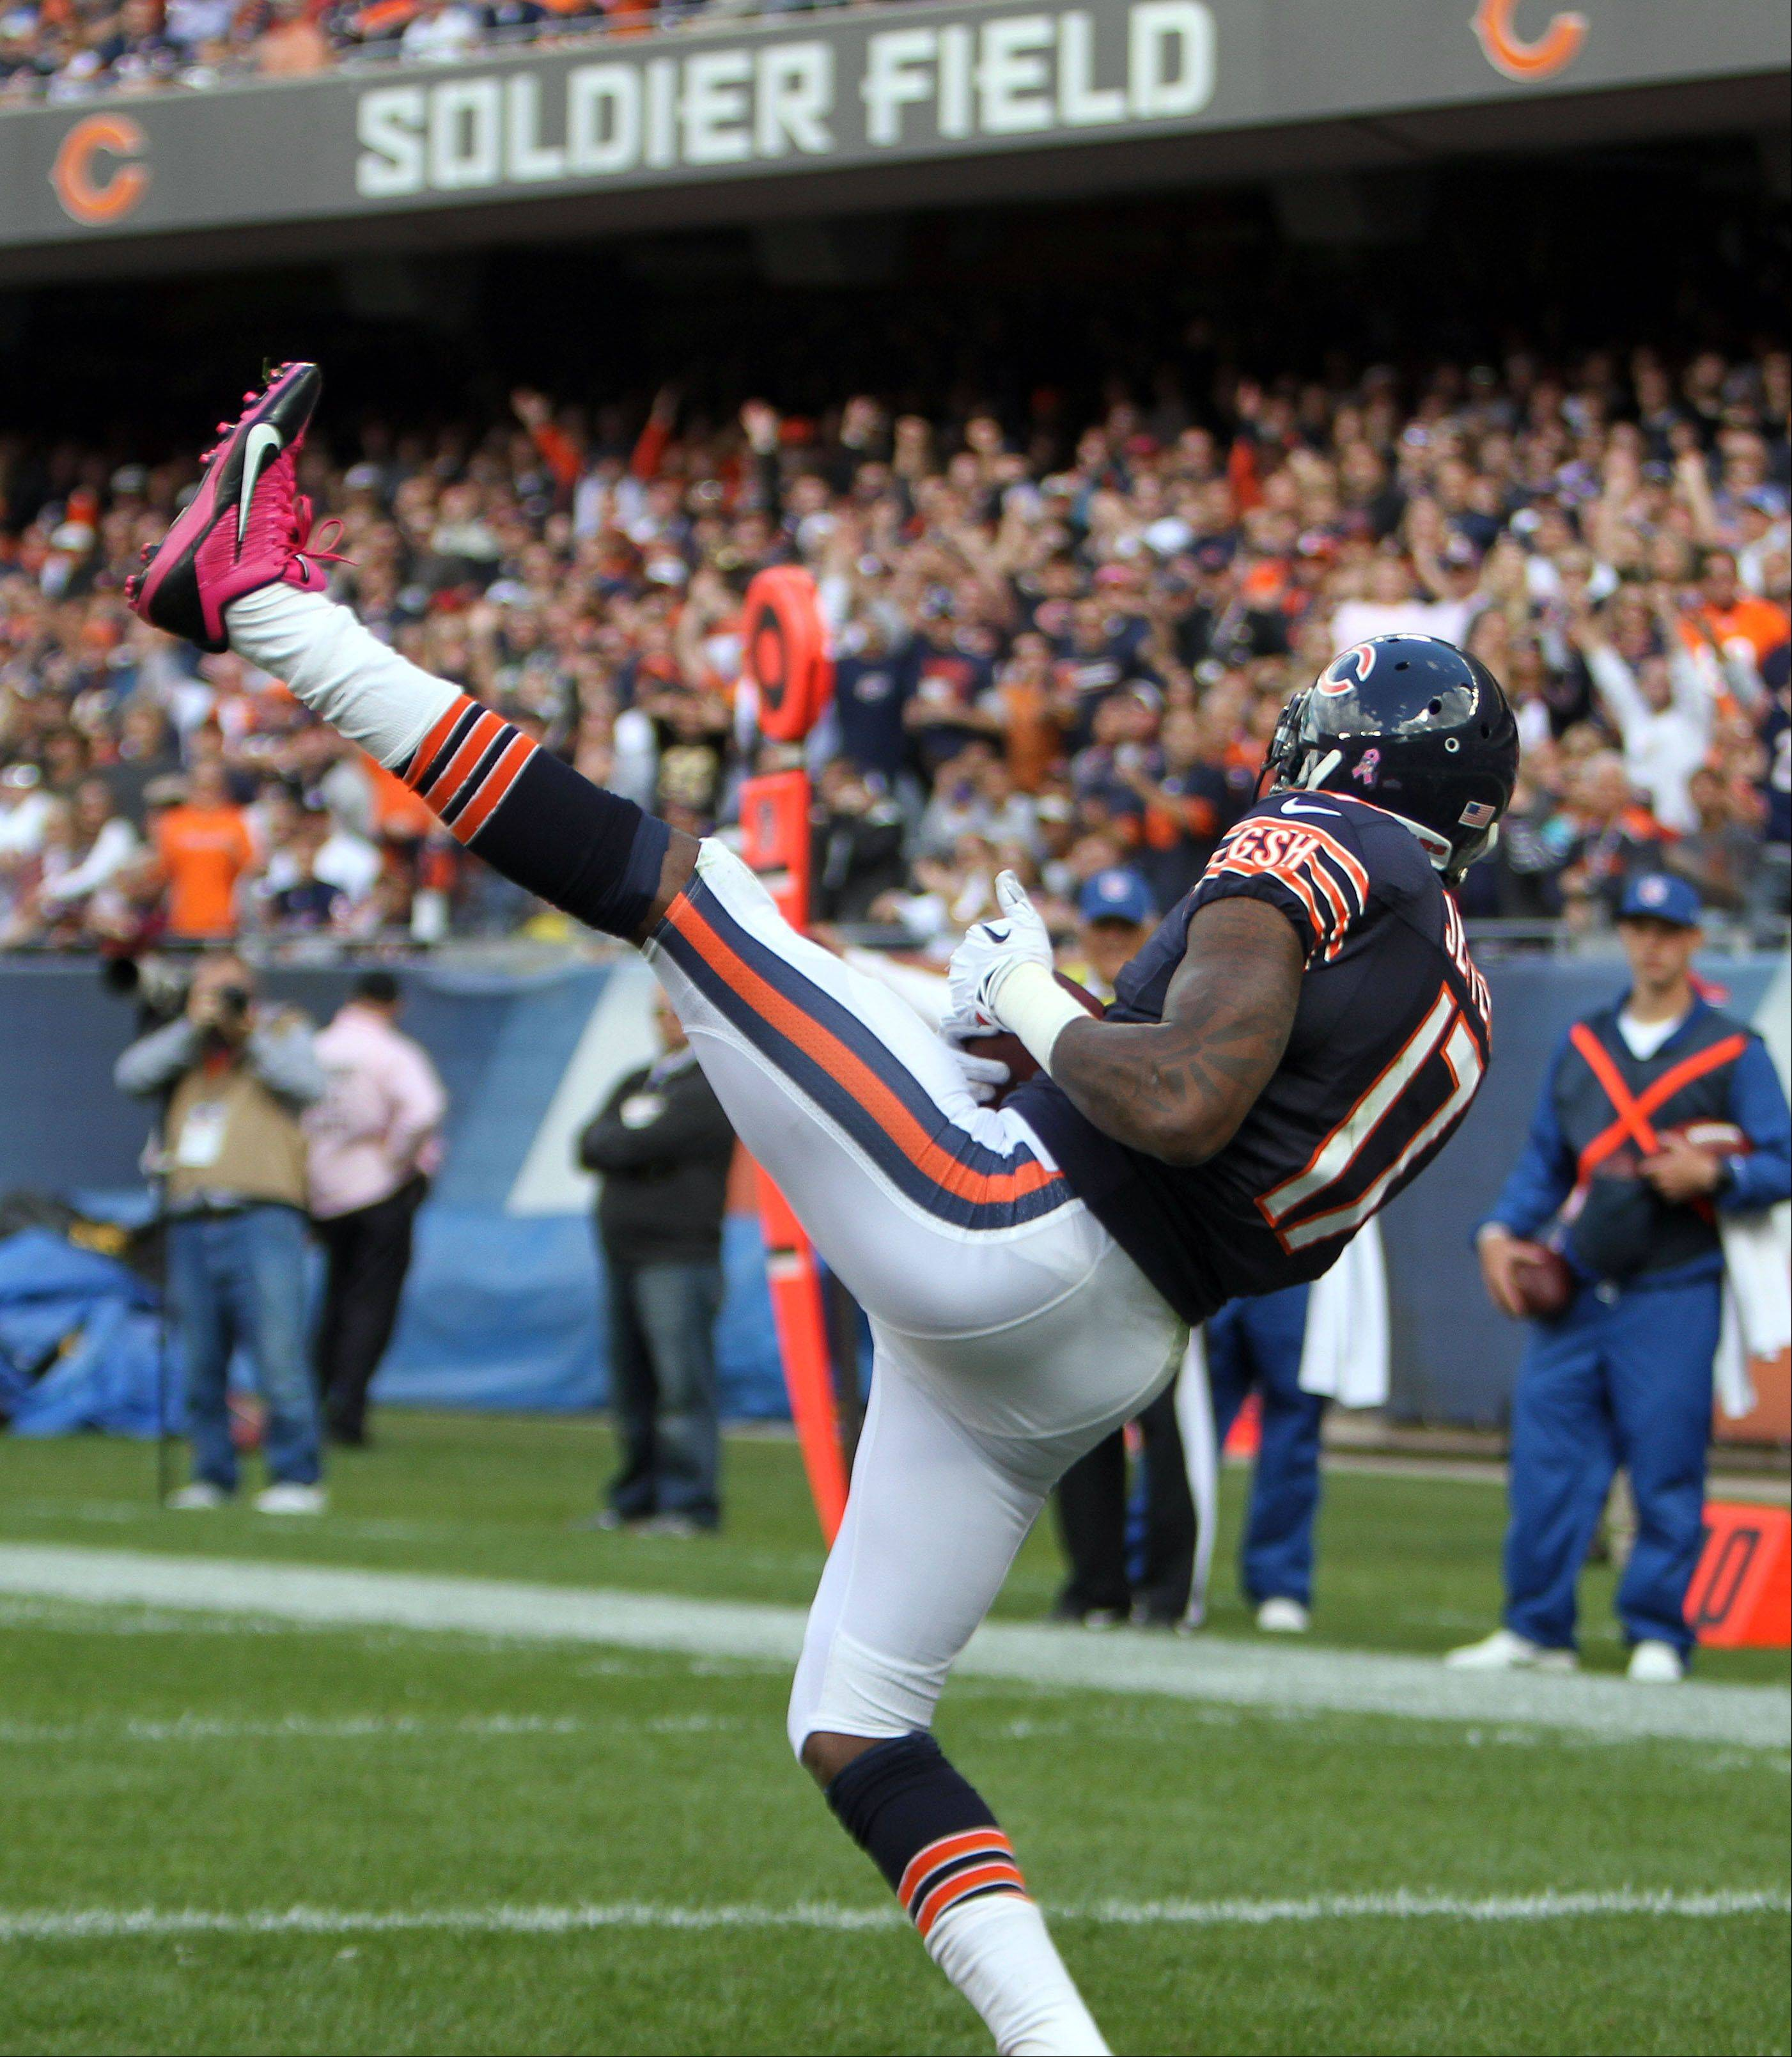 Chicago Bears wide receiver Alshon Jeffery catches a 3rd quarter touchdown.